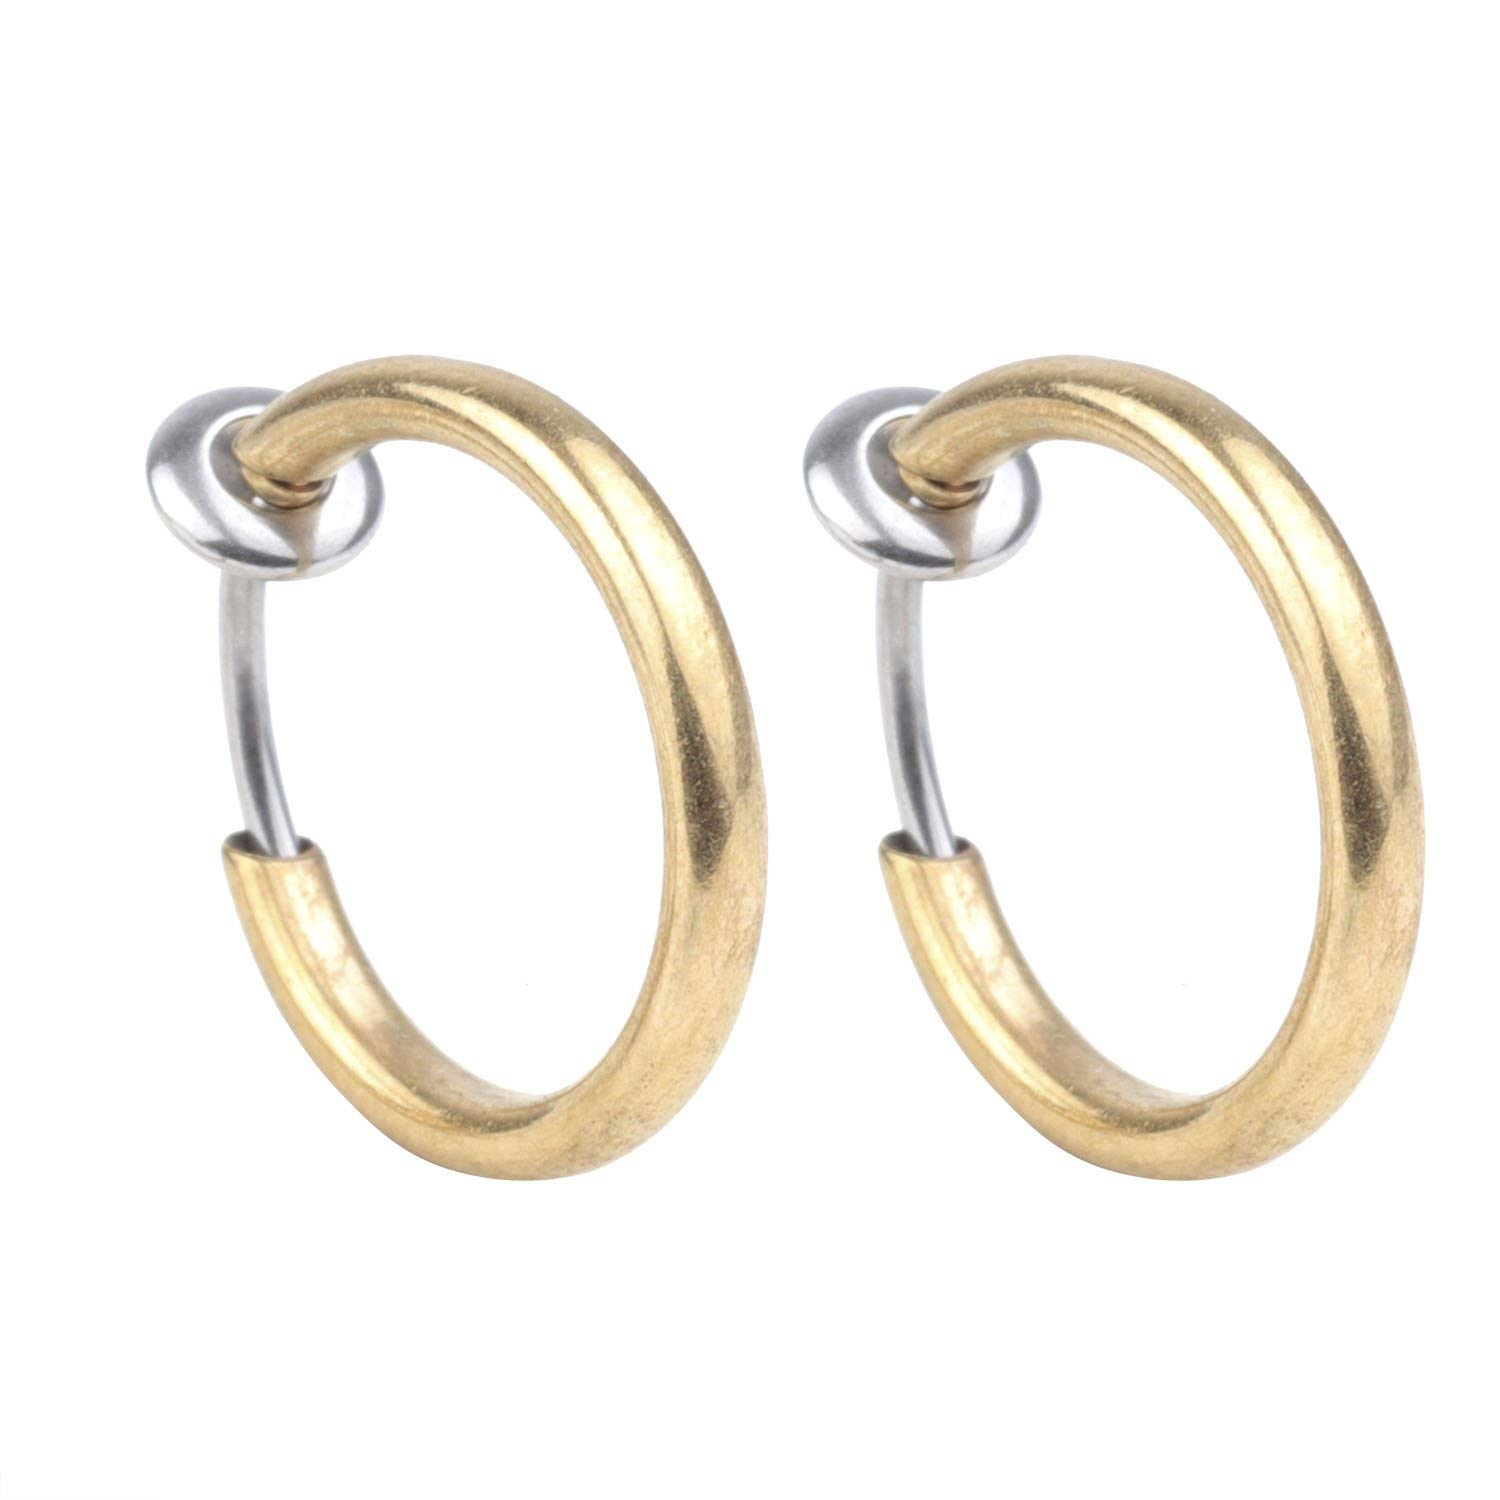 Get Quotations Ynr 16g 1 Pairs Gold Fake Cartilage Nose Ring Non Piercing Clip On Earrings